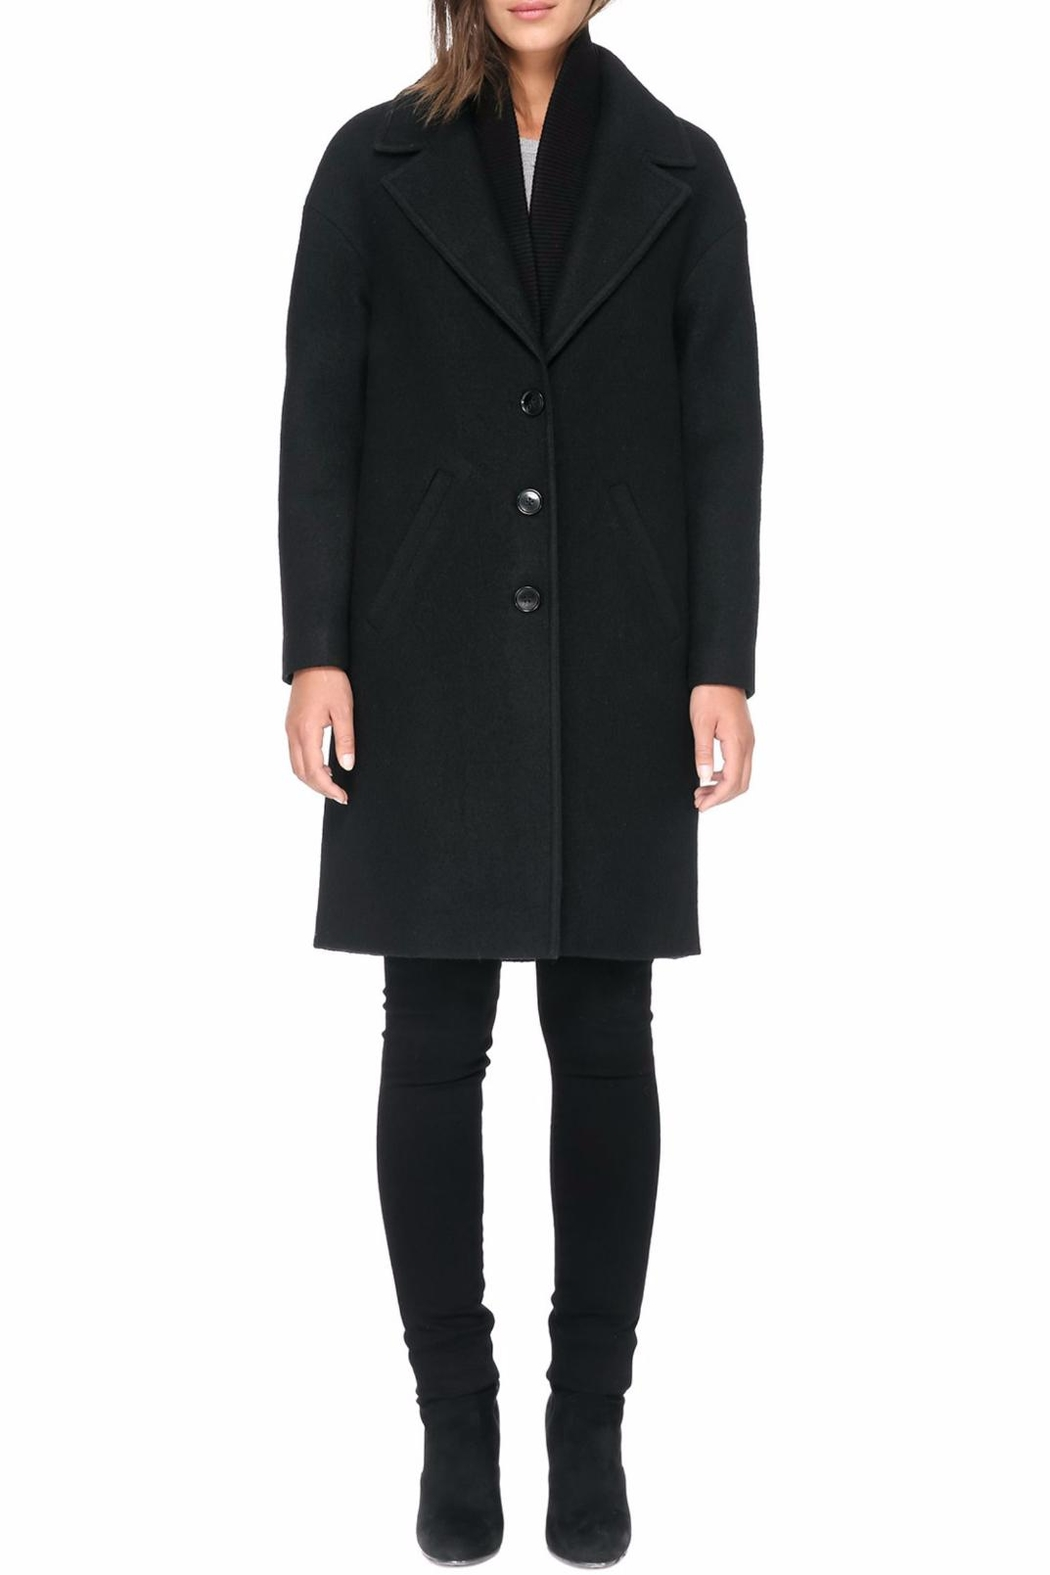 Soia & Kyo Christelle R Wool Coat - Side Cropped Image